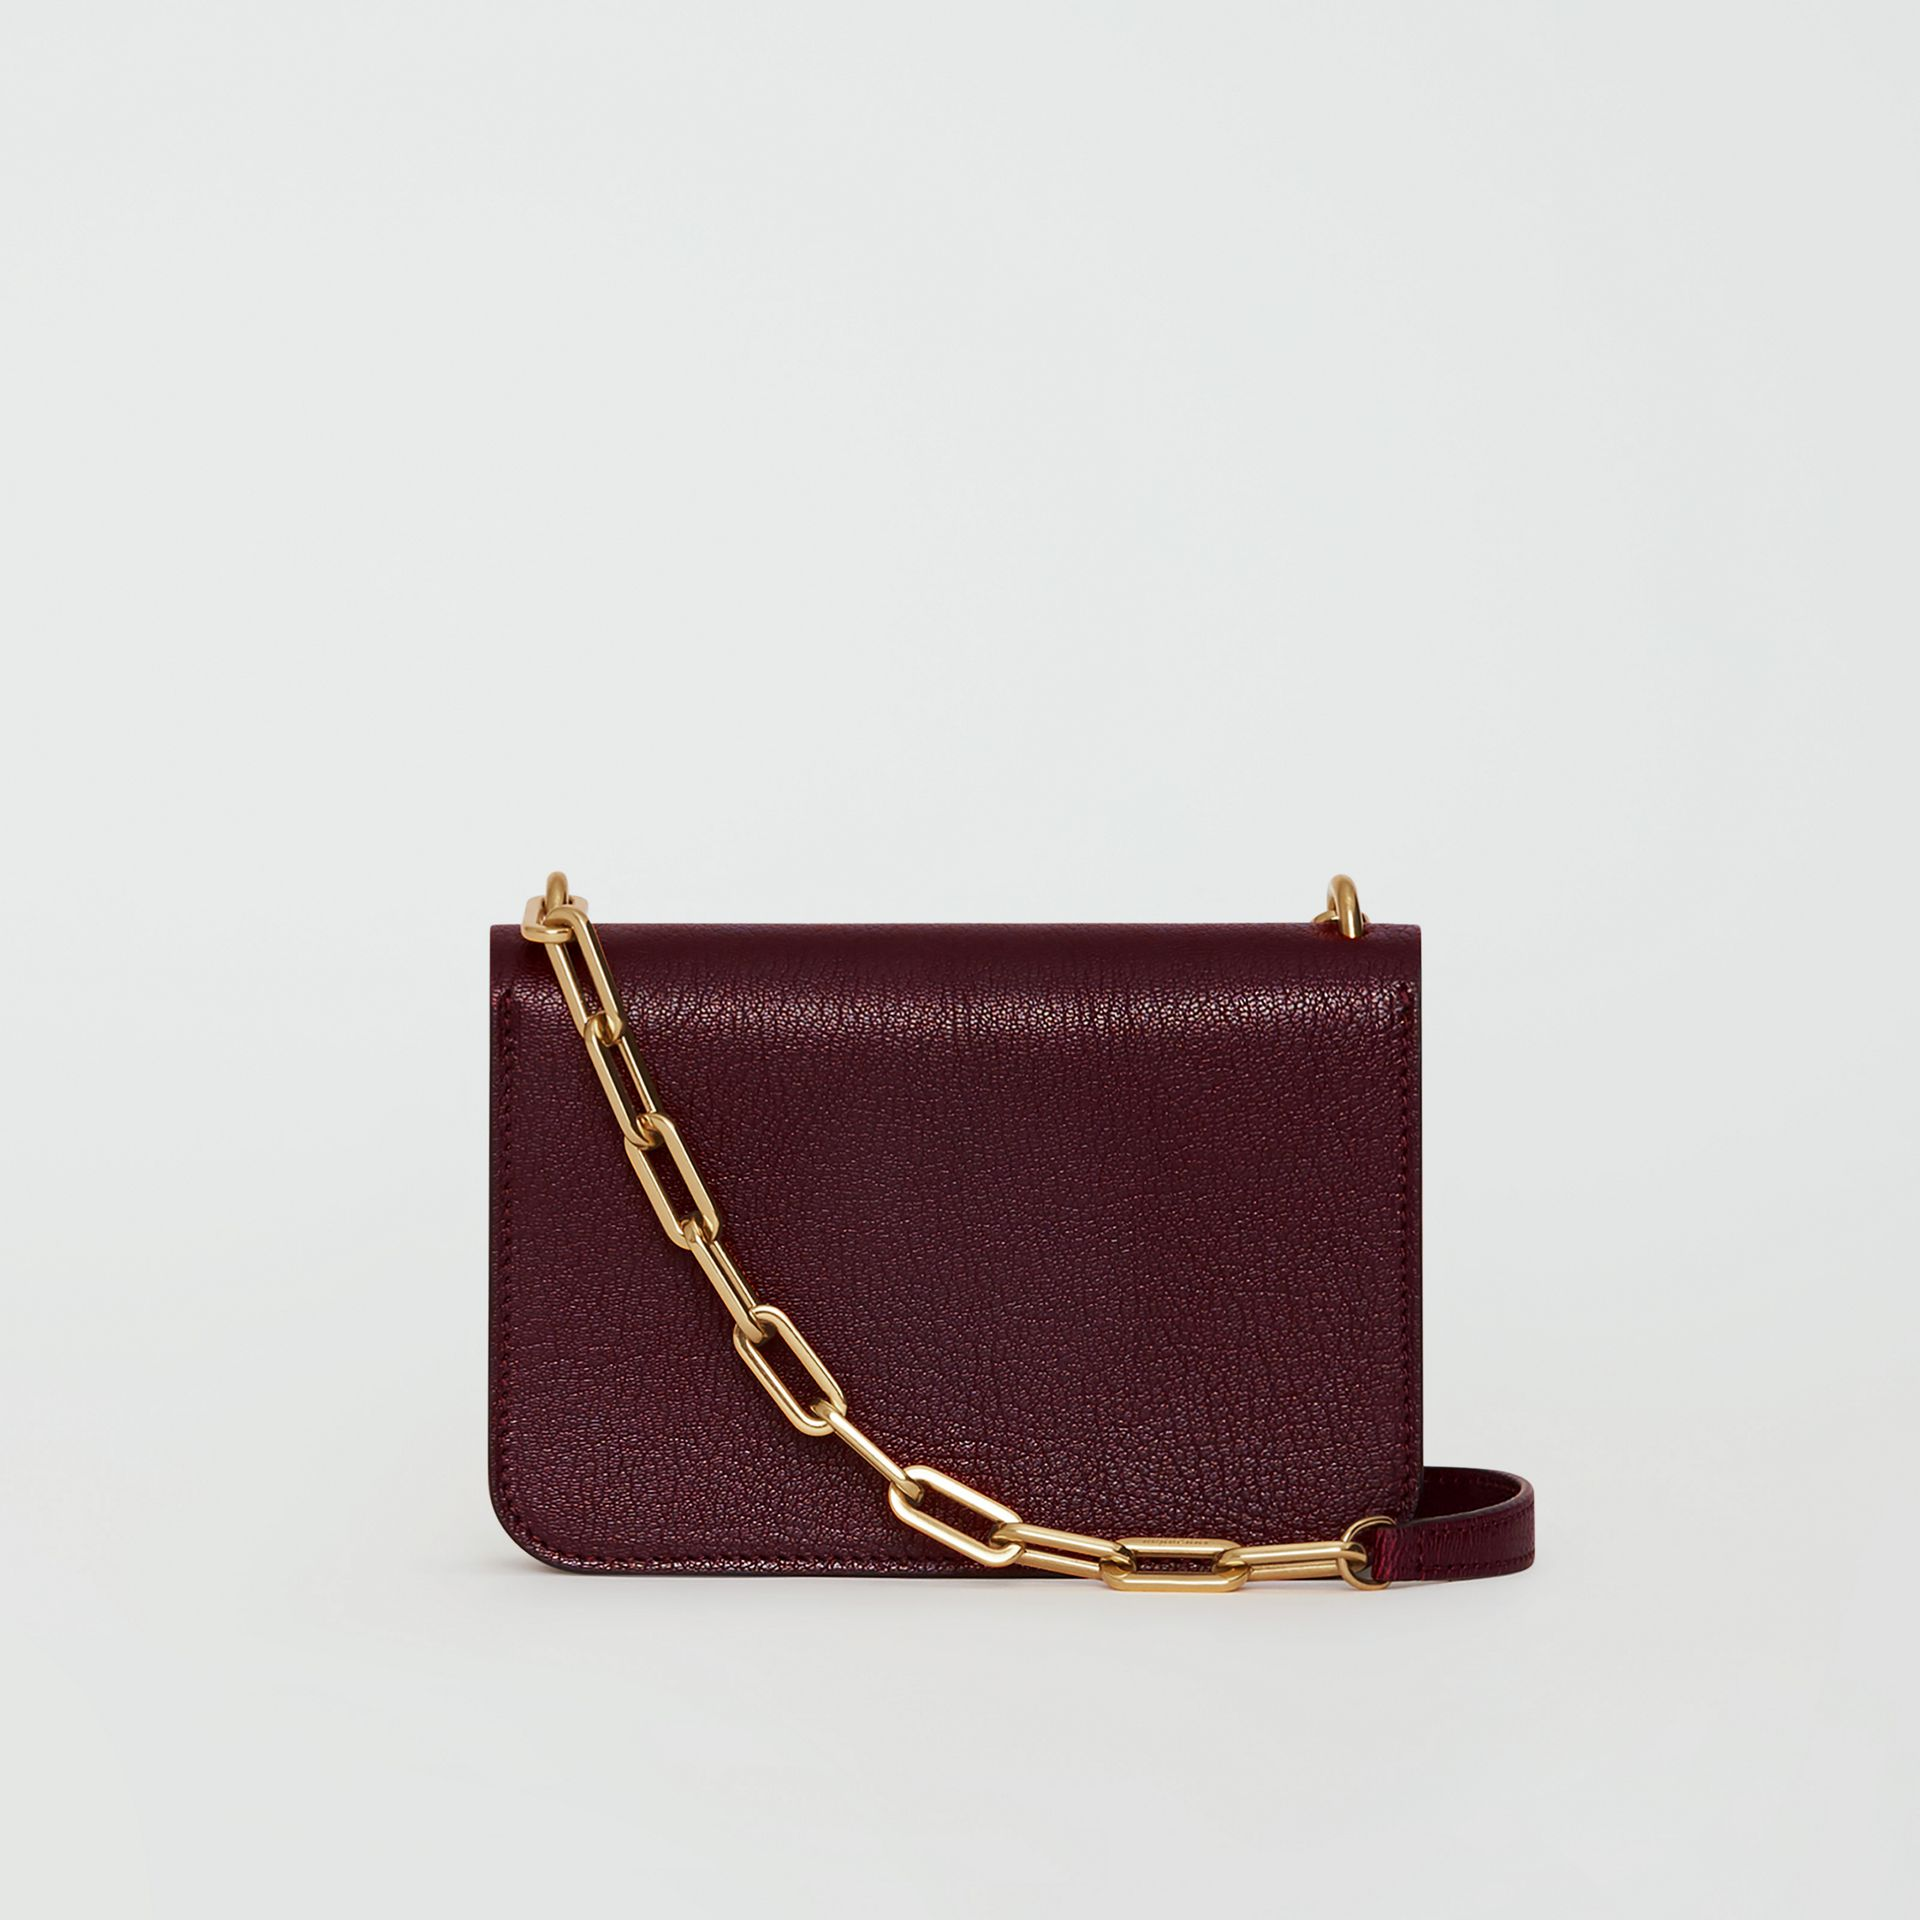 The Mini Leather Crystal D-ring Bag in Deep Claret - Women | Burberry Australia - gallery image 5